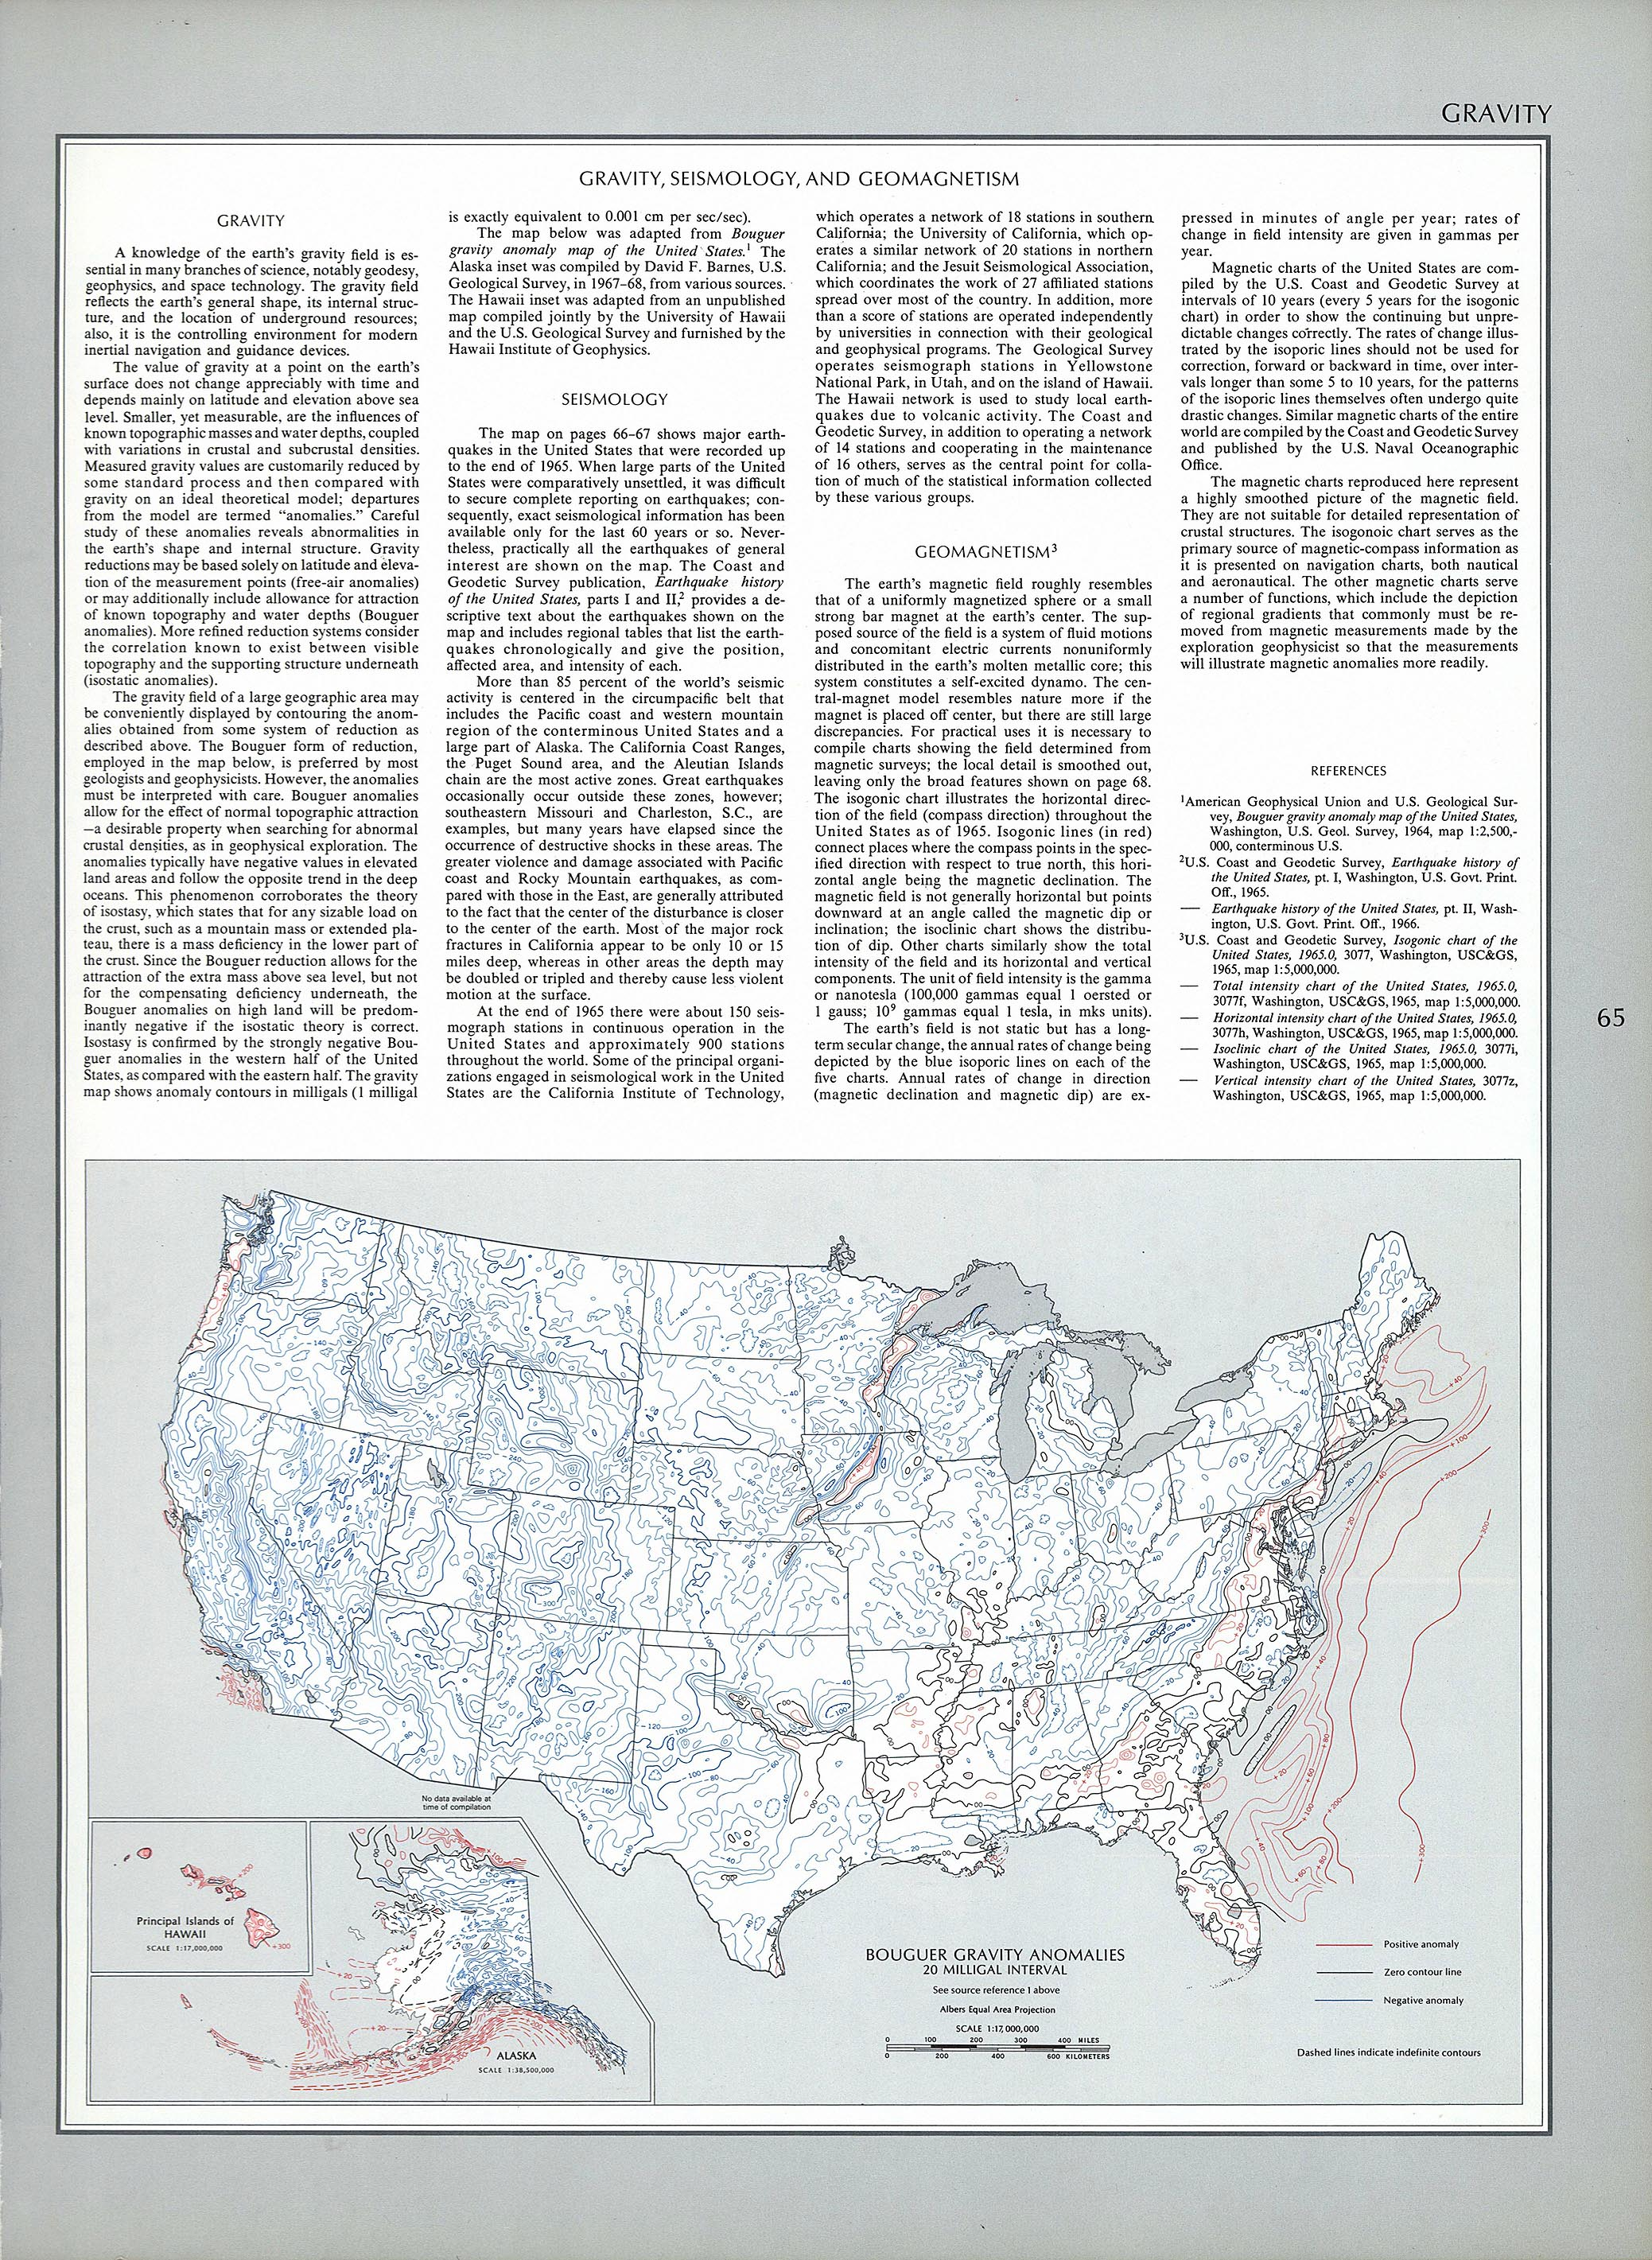 Bouguer Gravity Anomalies in the United States 1970